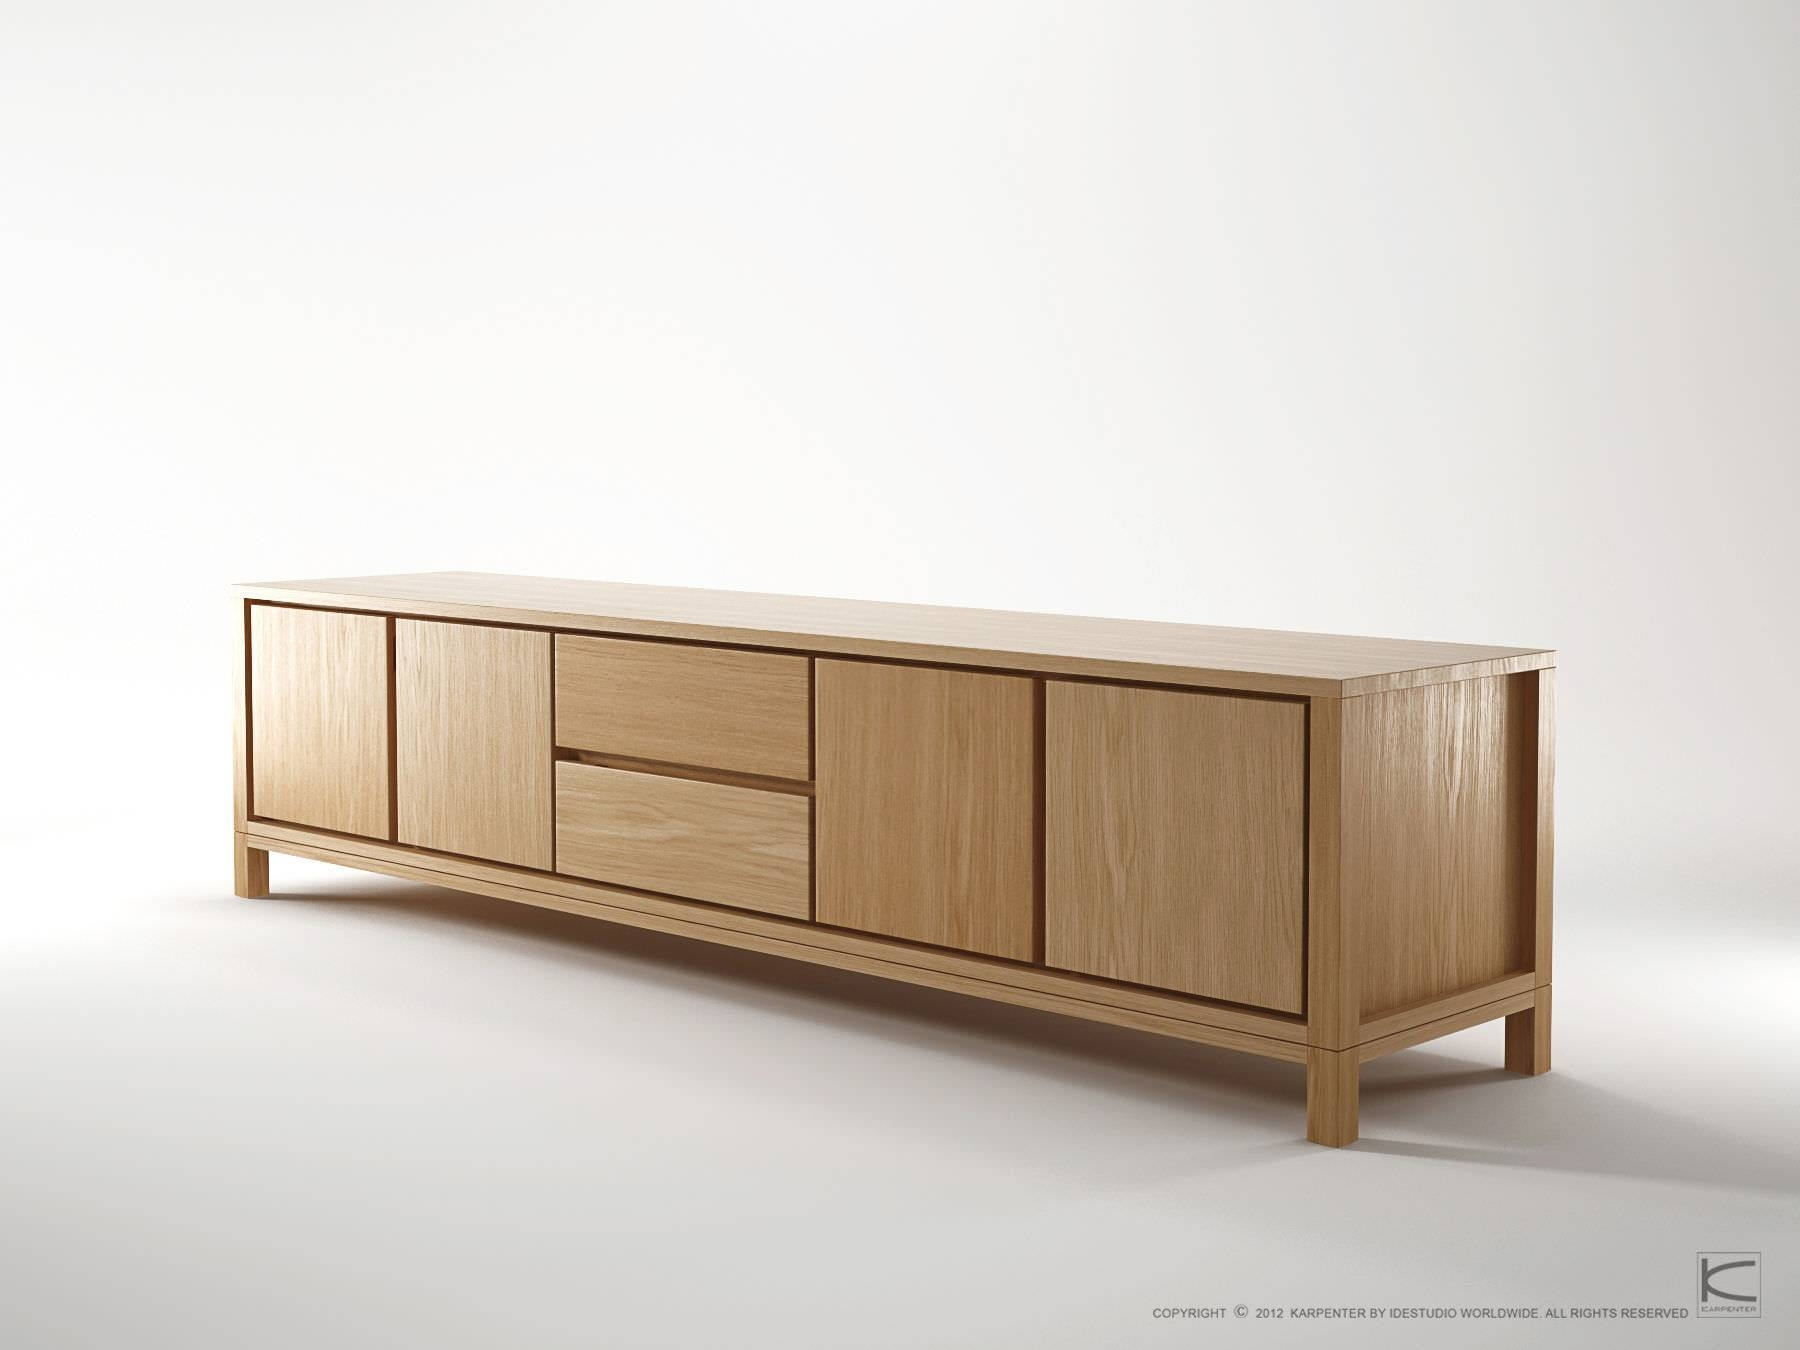 Contemporary Sideboard / Oak / Walnut / Solid Wood - Solid - Karpenter intended for Contemporary Wood Sideboards (Image 6 of 30)